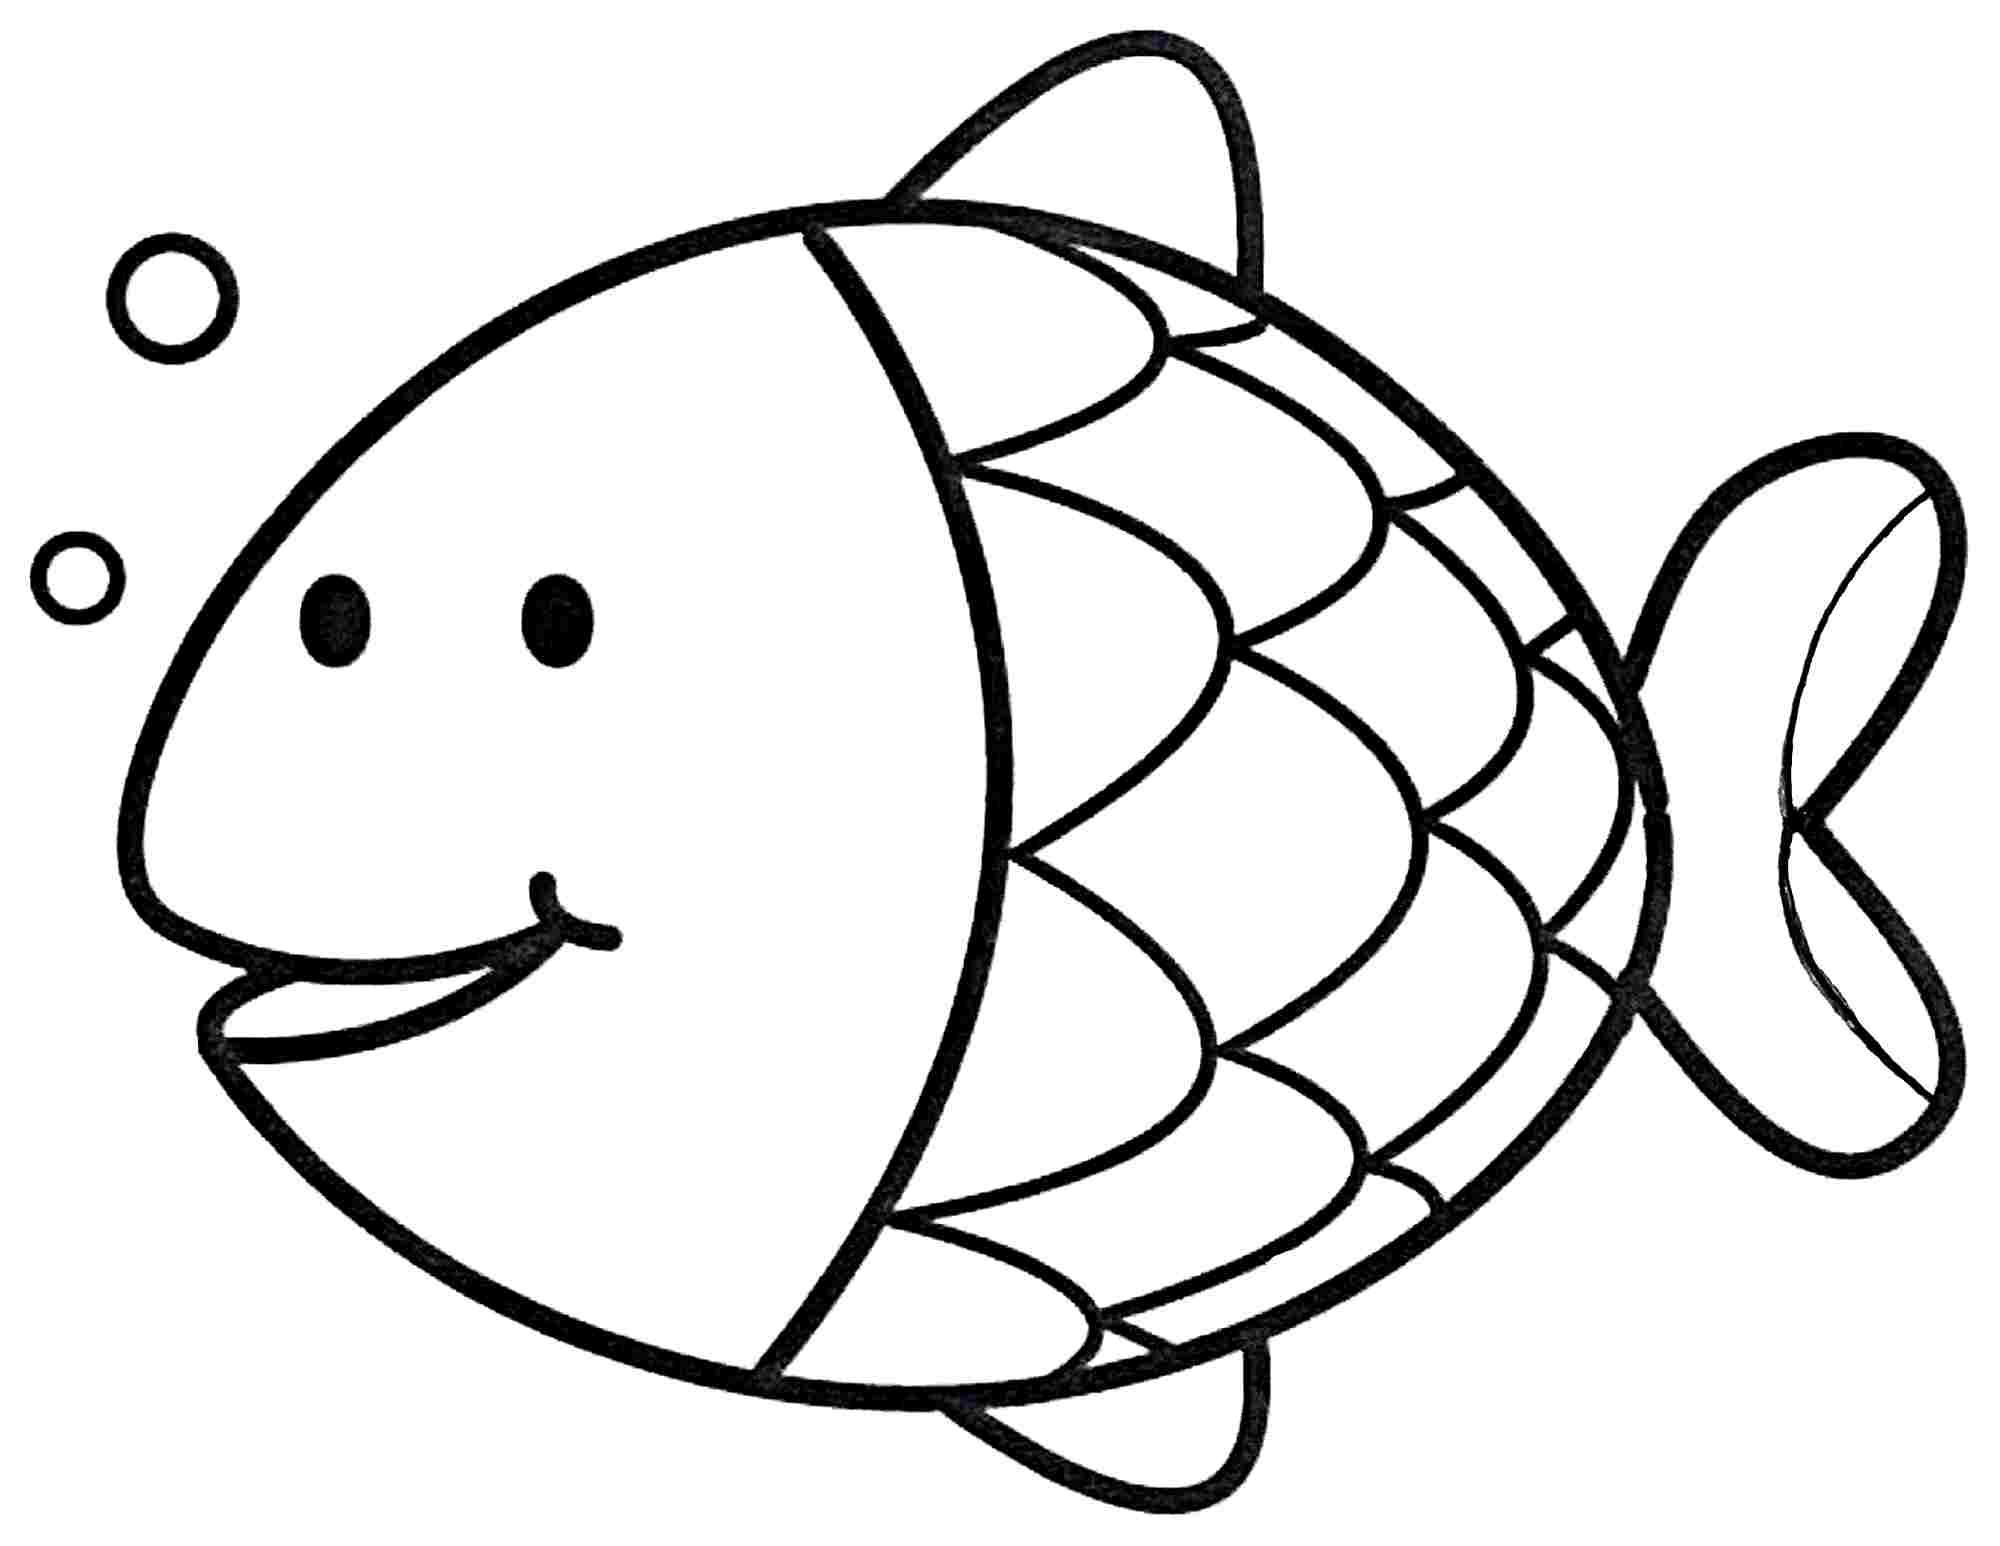 Kids Printable Fish Coloring Pages